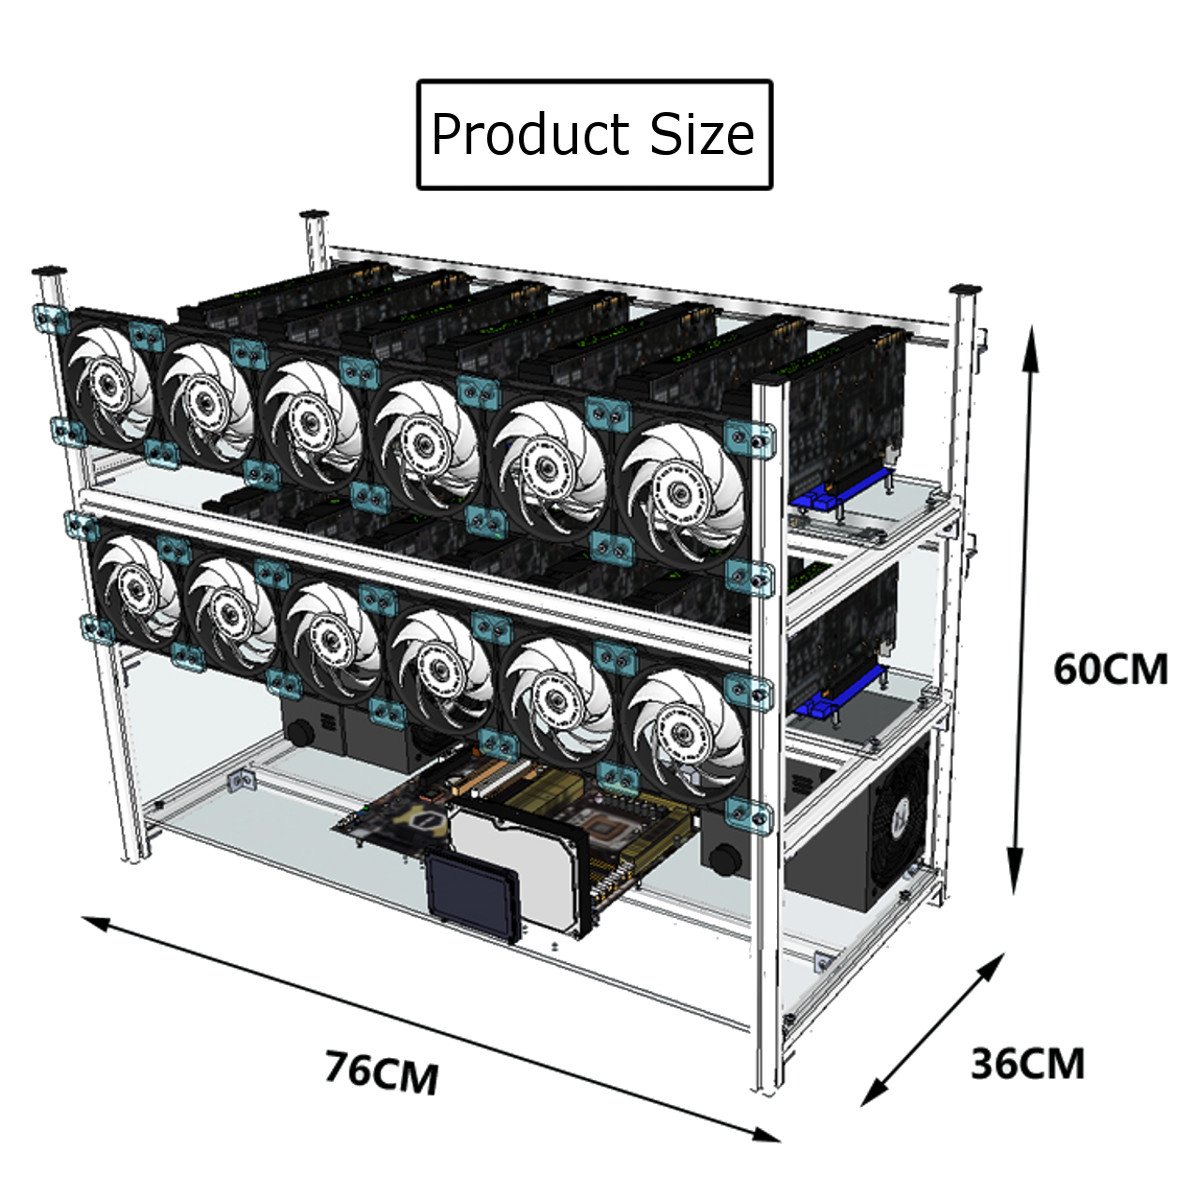 Aluminum Open Air Mining Stackable Frame Rig Case 14 GPU For ETH Ethereum ZCash Bitcoin